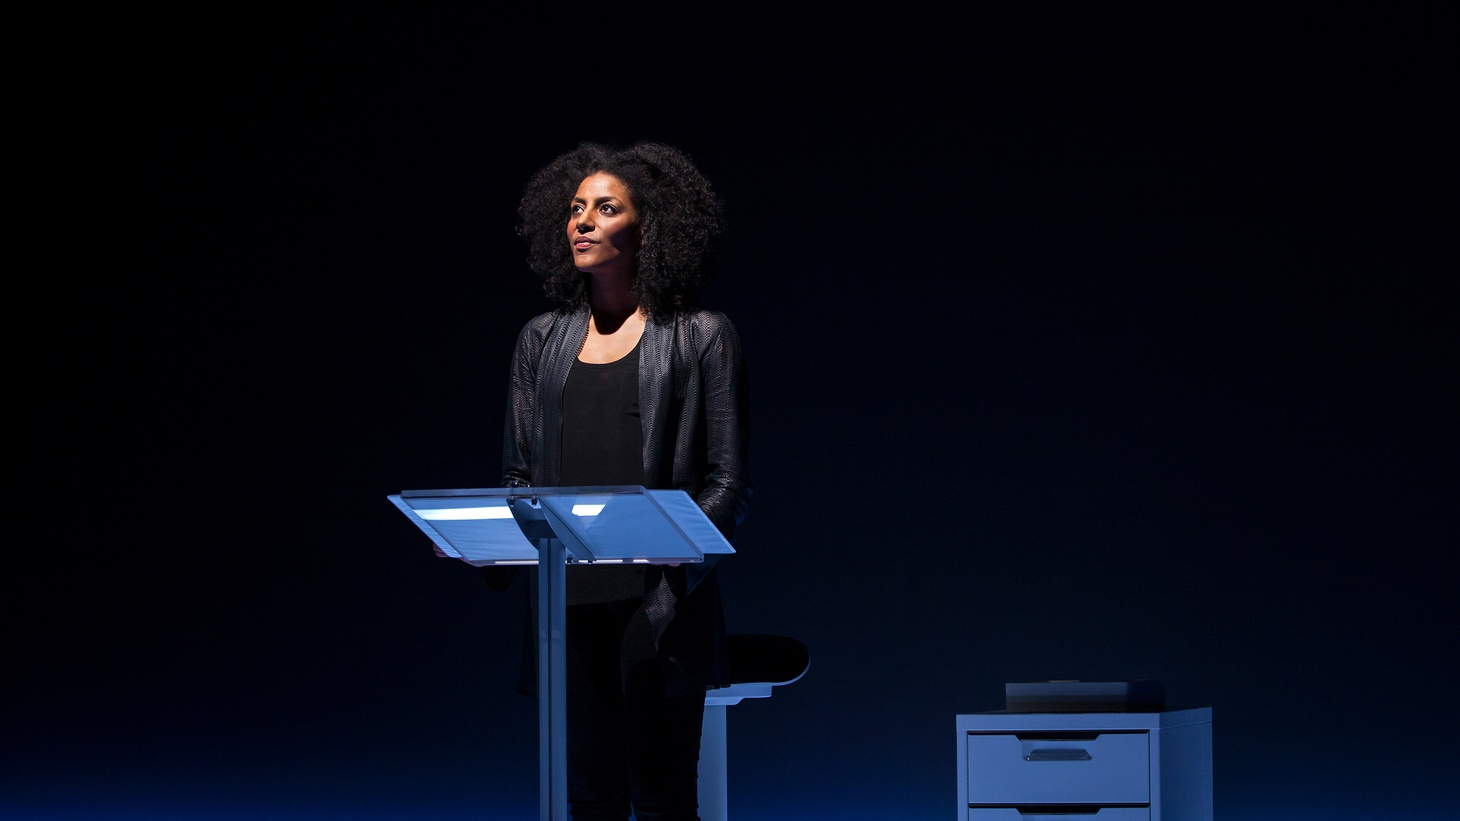 """If you go see Sarah Jones' one woman show """"Sell/Buy/Date"""" at the Geffen Playhouse, I'll bet you that someone in the seats near whispers during the show """"wow, she's good."""""""